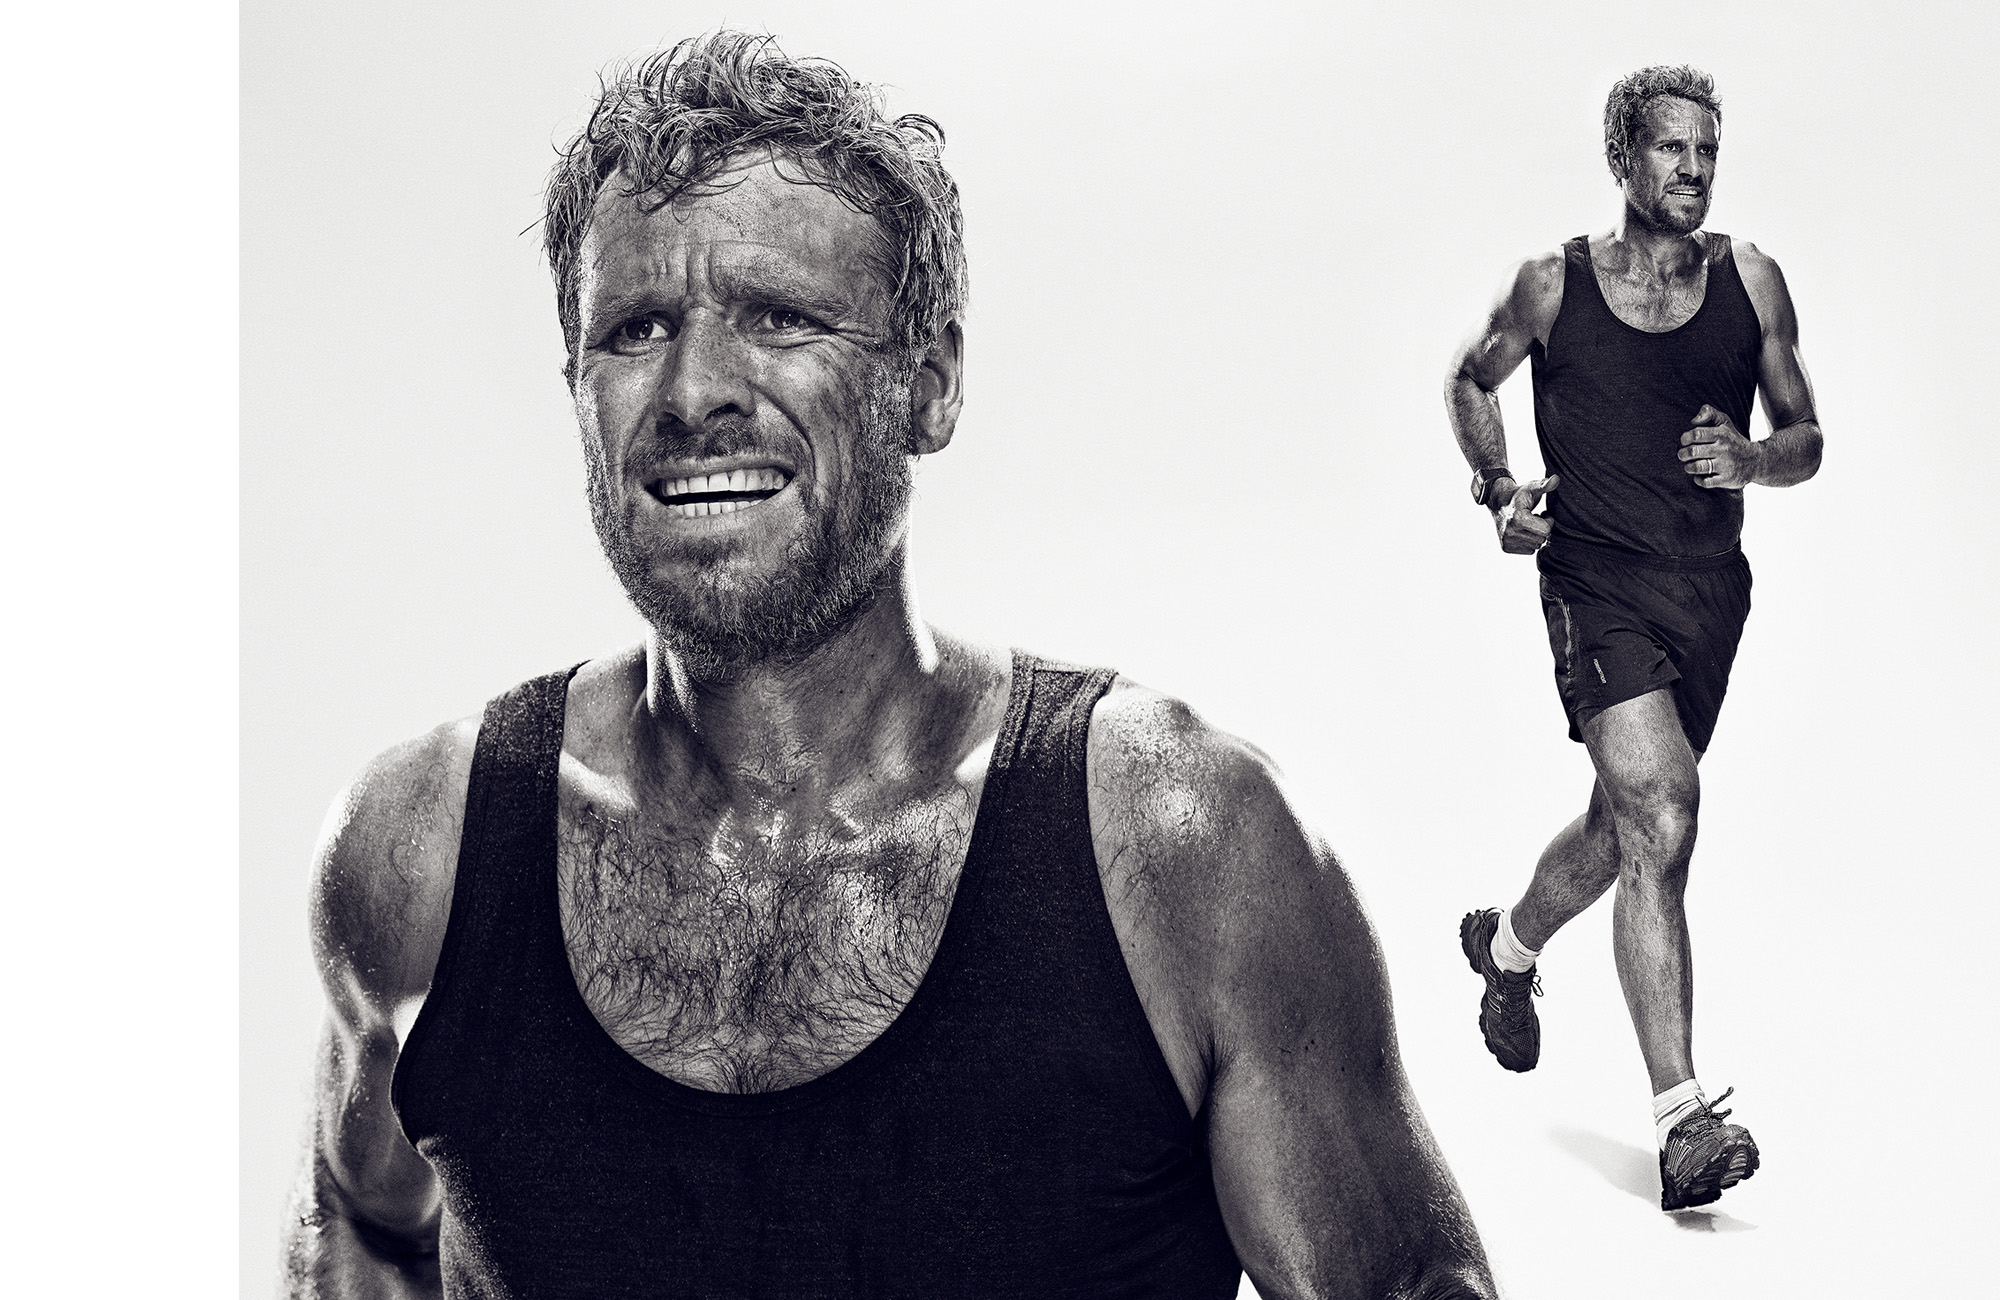 Discovery channel – James Cracknell - 2 of 2